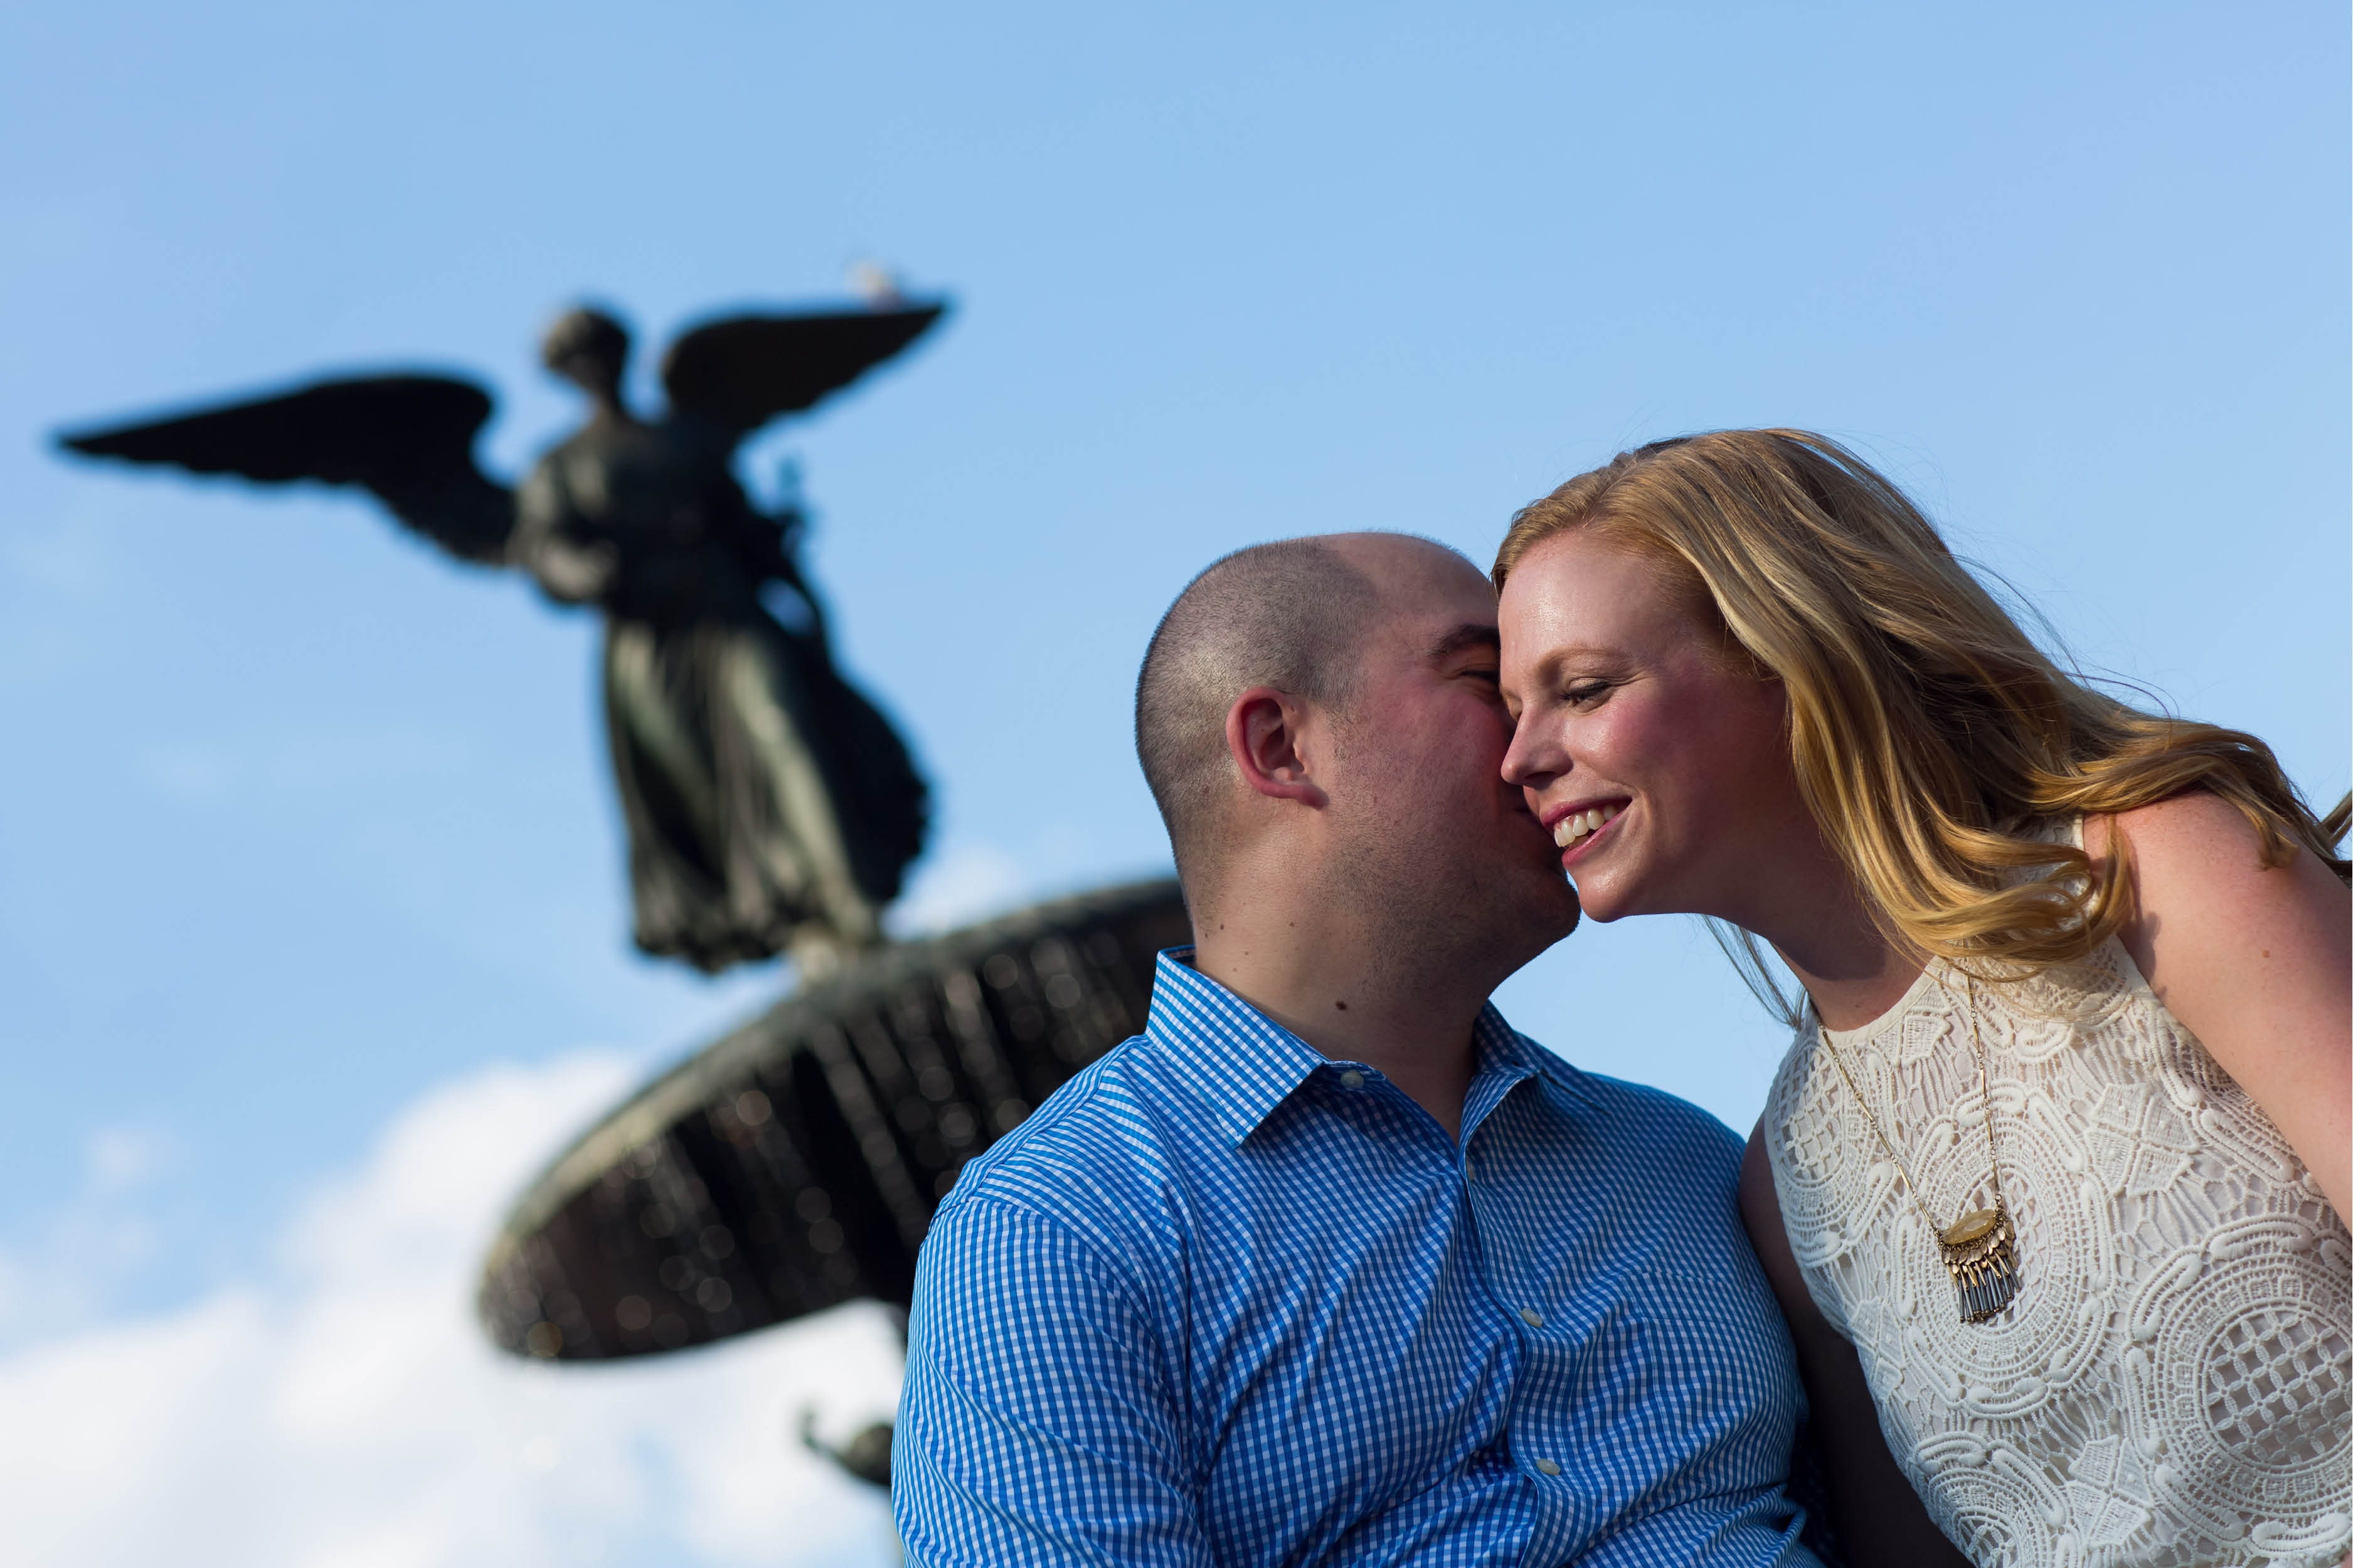 Emma_cleary_photography Central park engagement4